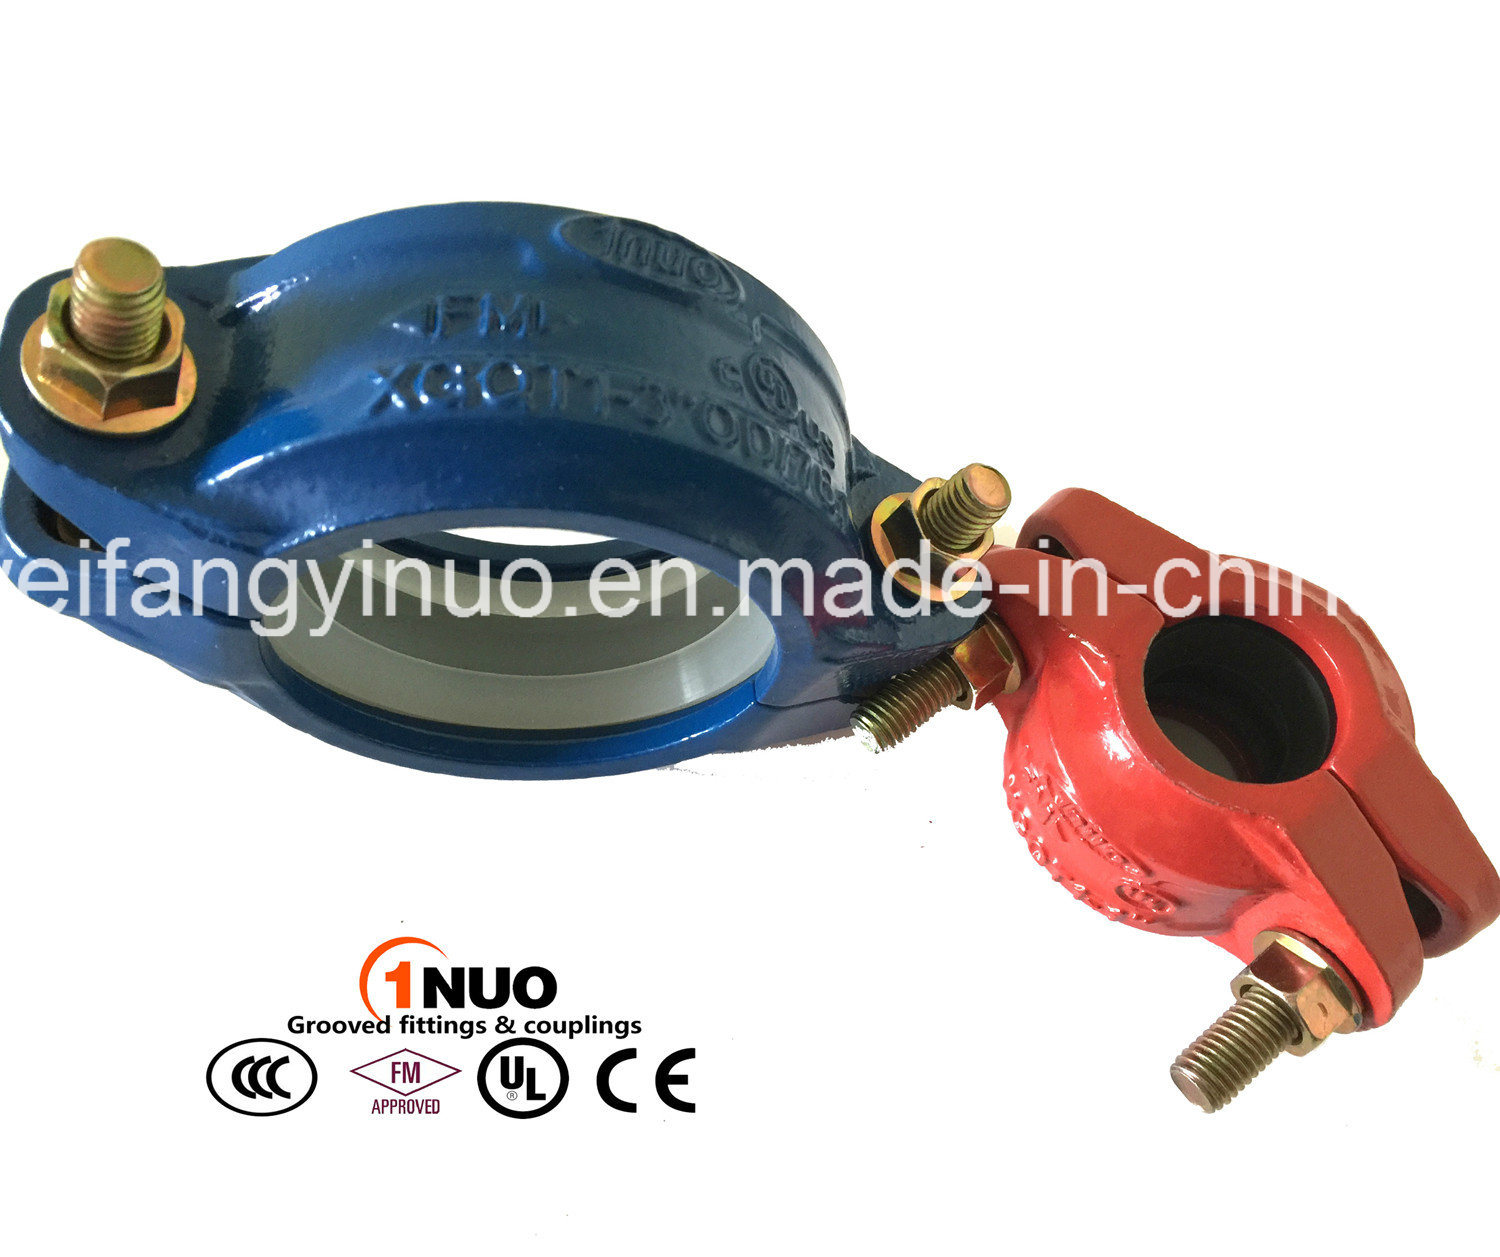 Ductile Iron Flexible Coupling with FM/UL/Ce Approval